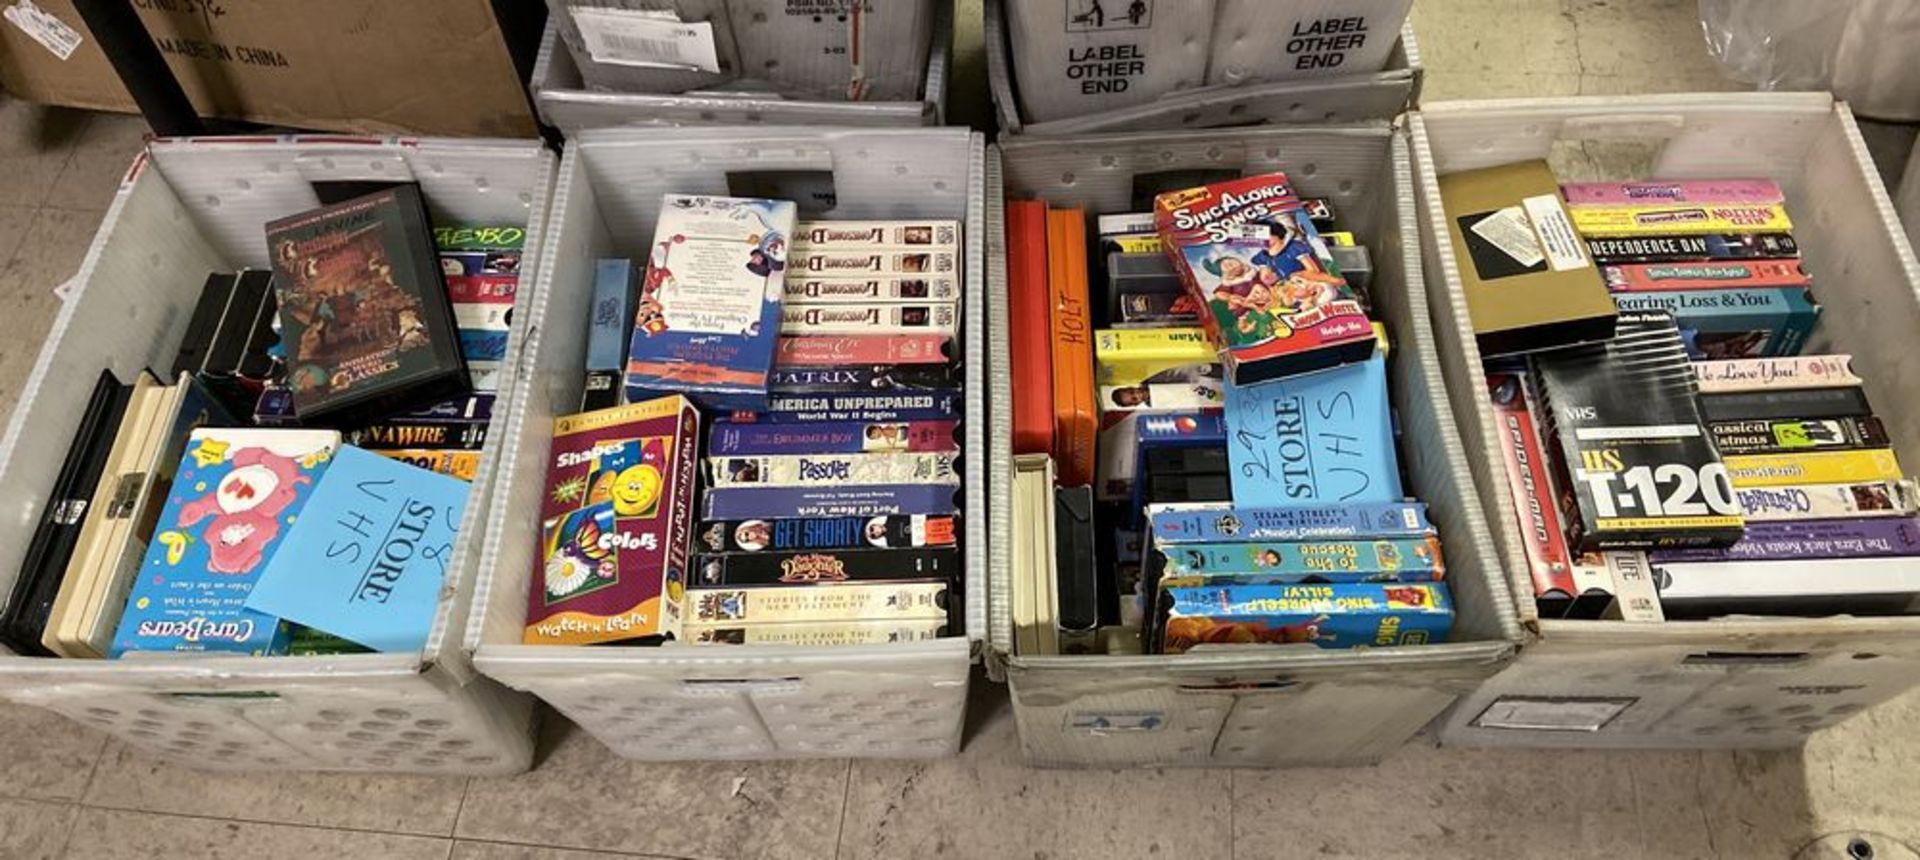 Lot 56 - 385+ VHS Movie Videos, Including Disney, Three Stooges, and other classics